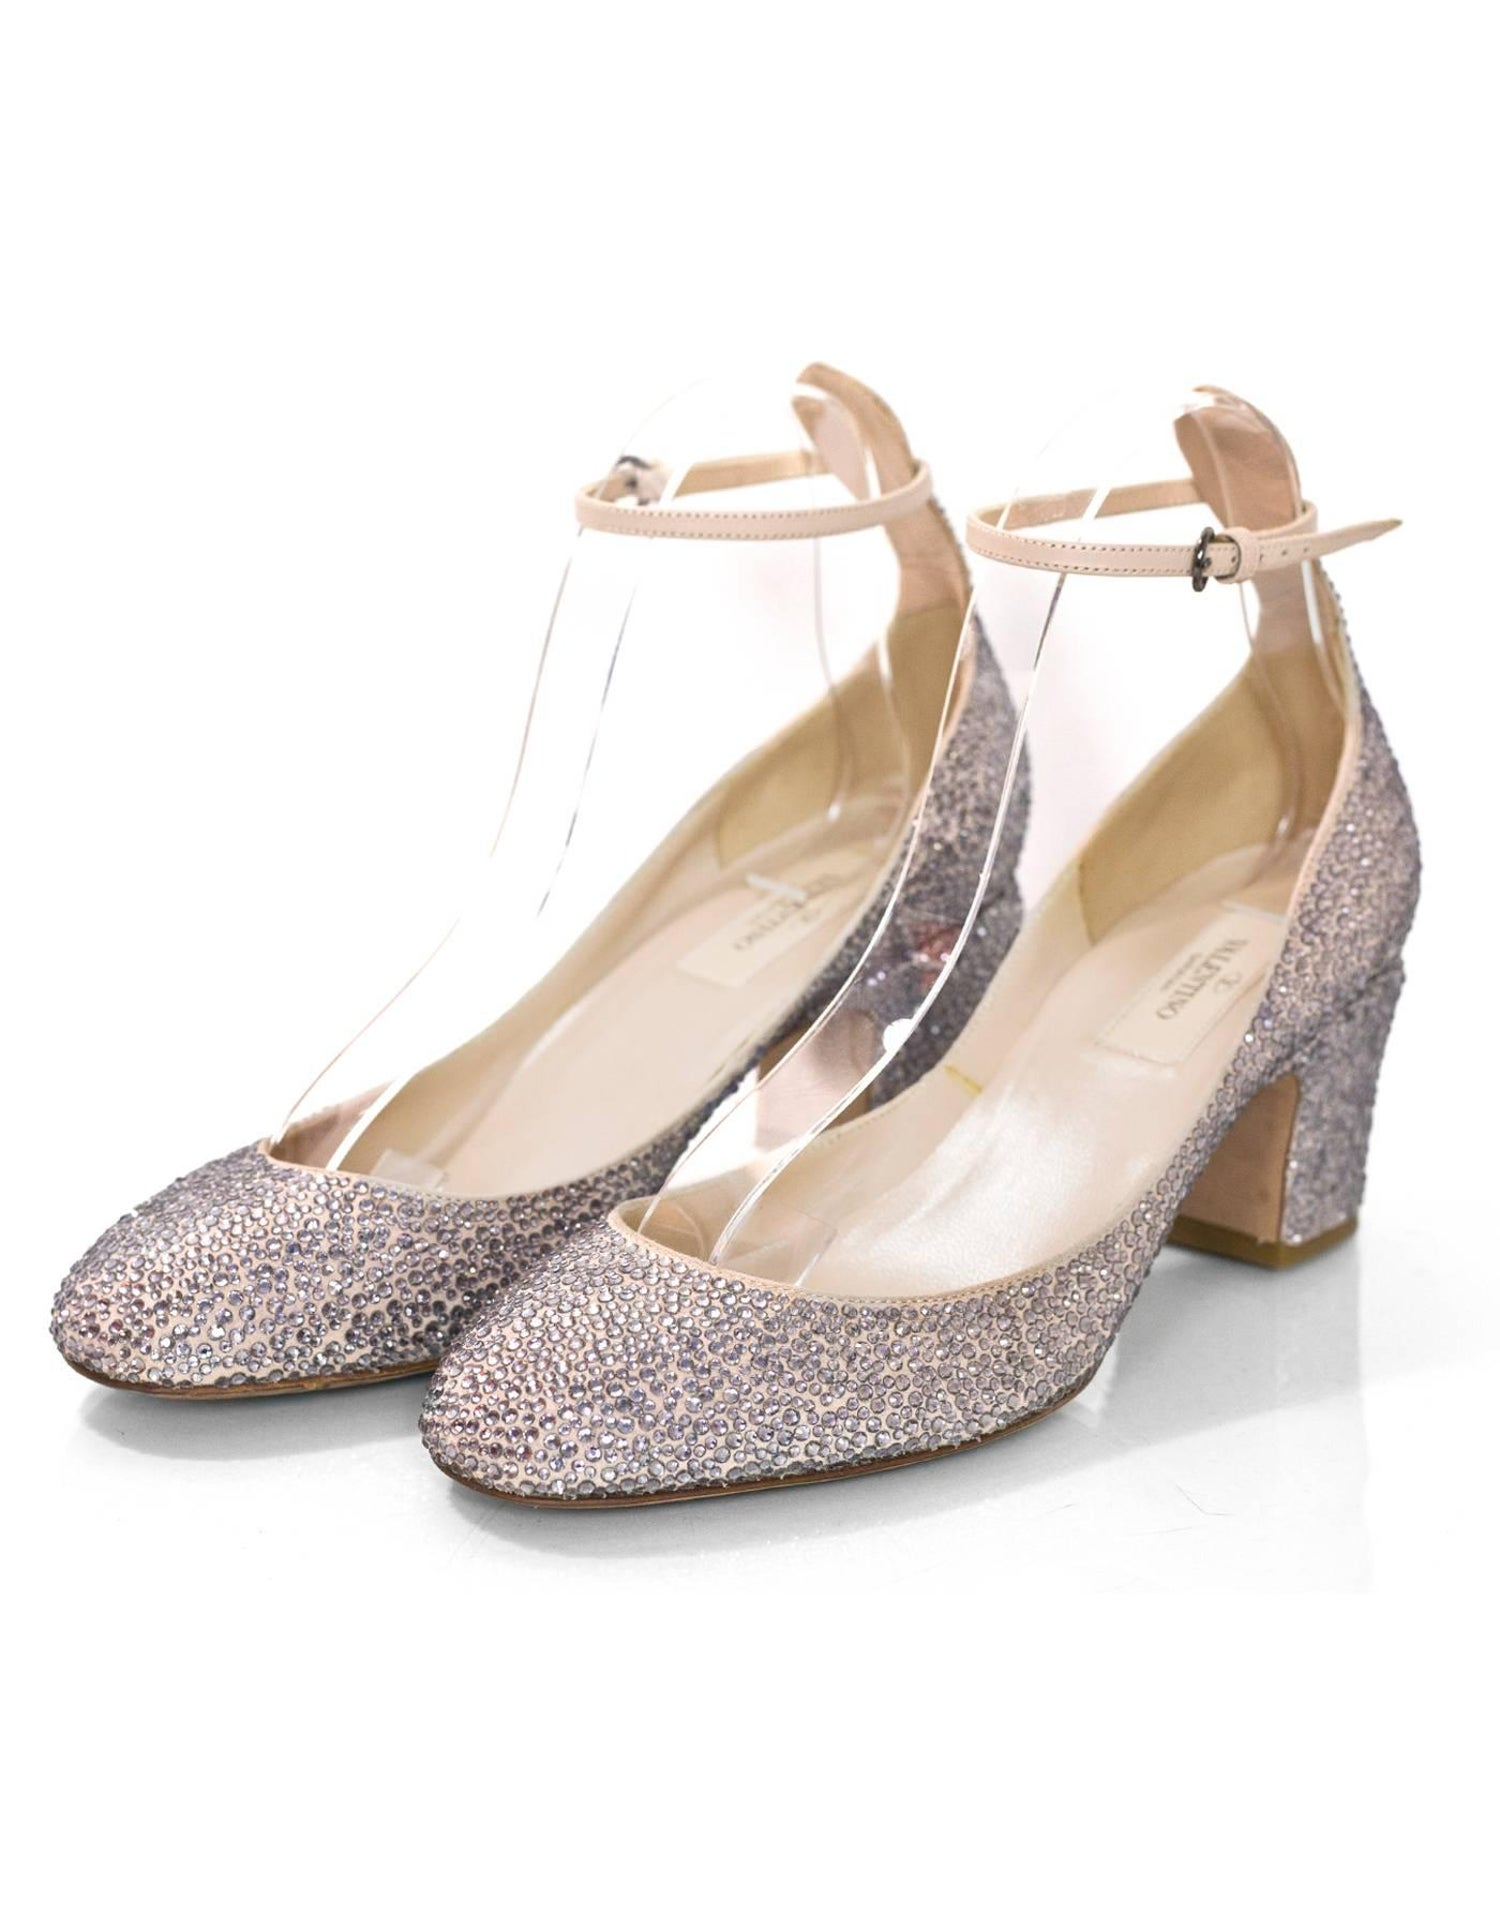 f3c71189082ee Valentino Pewter and Taupe Crystal Encrusted Pumps sz 38 at 1stdibs